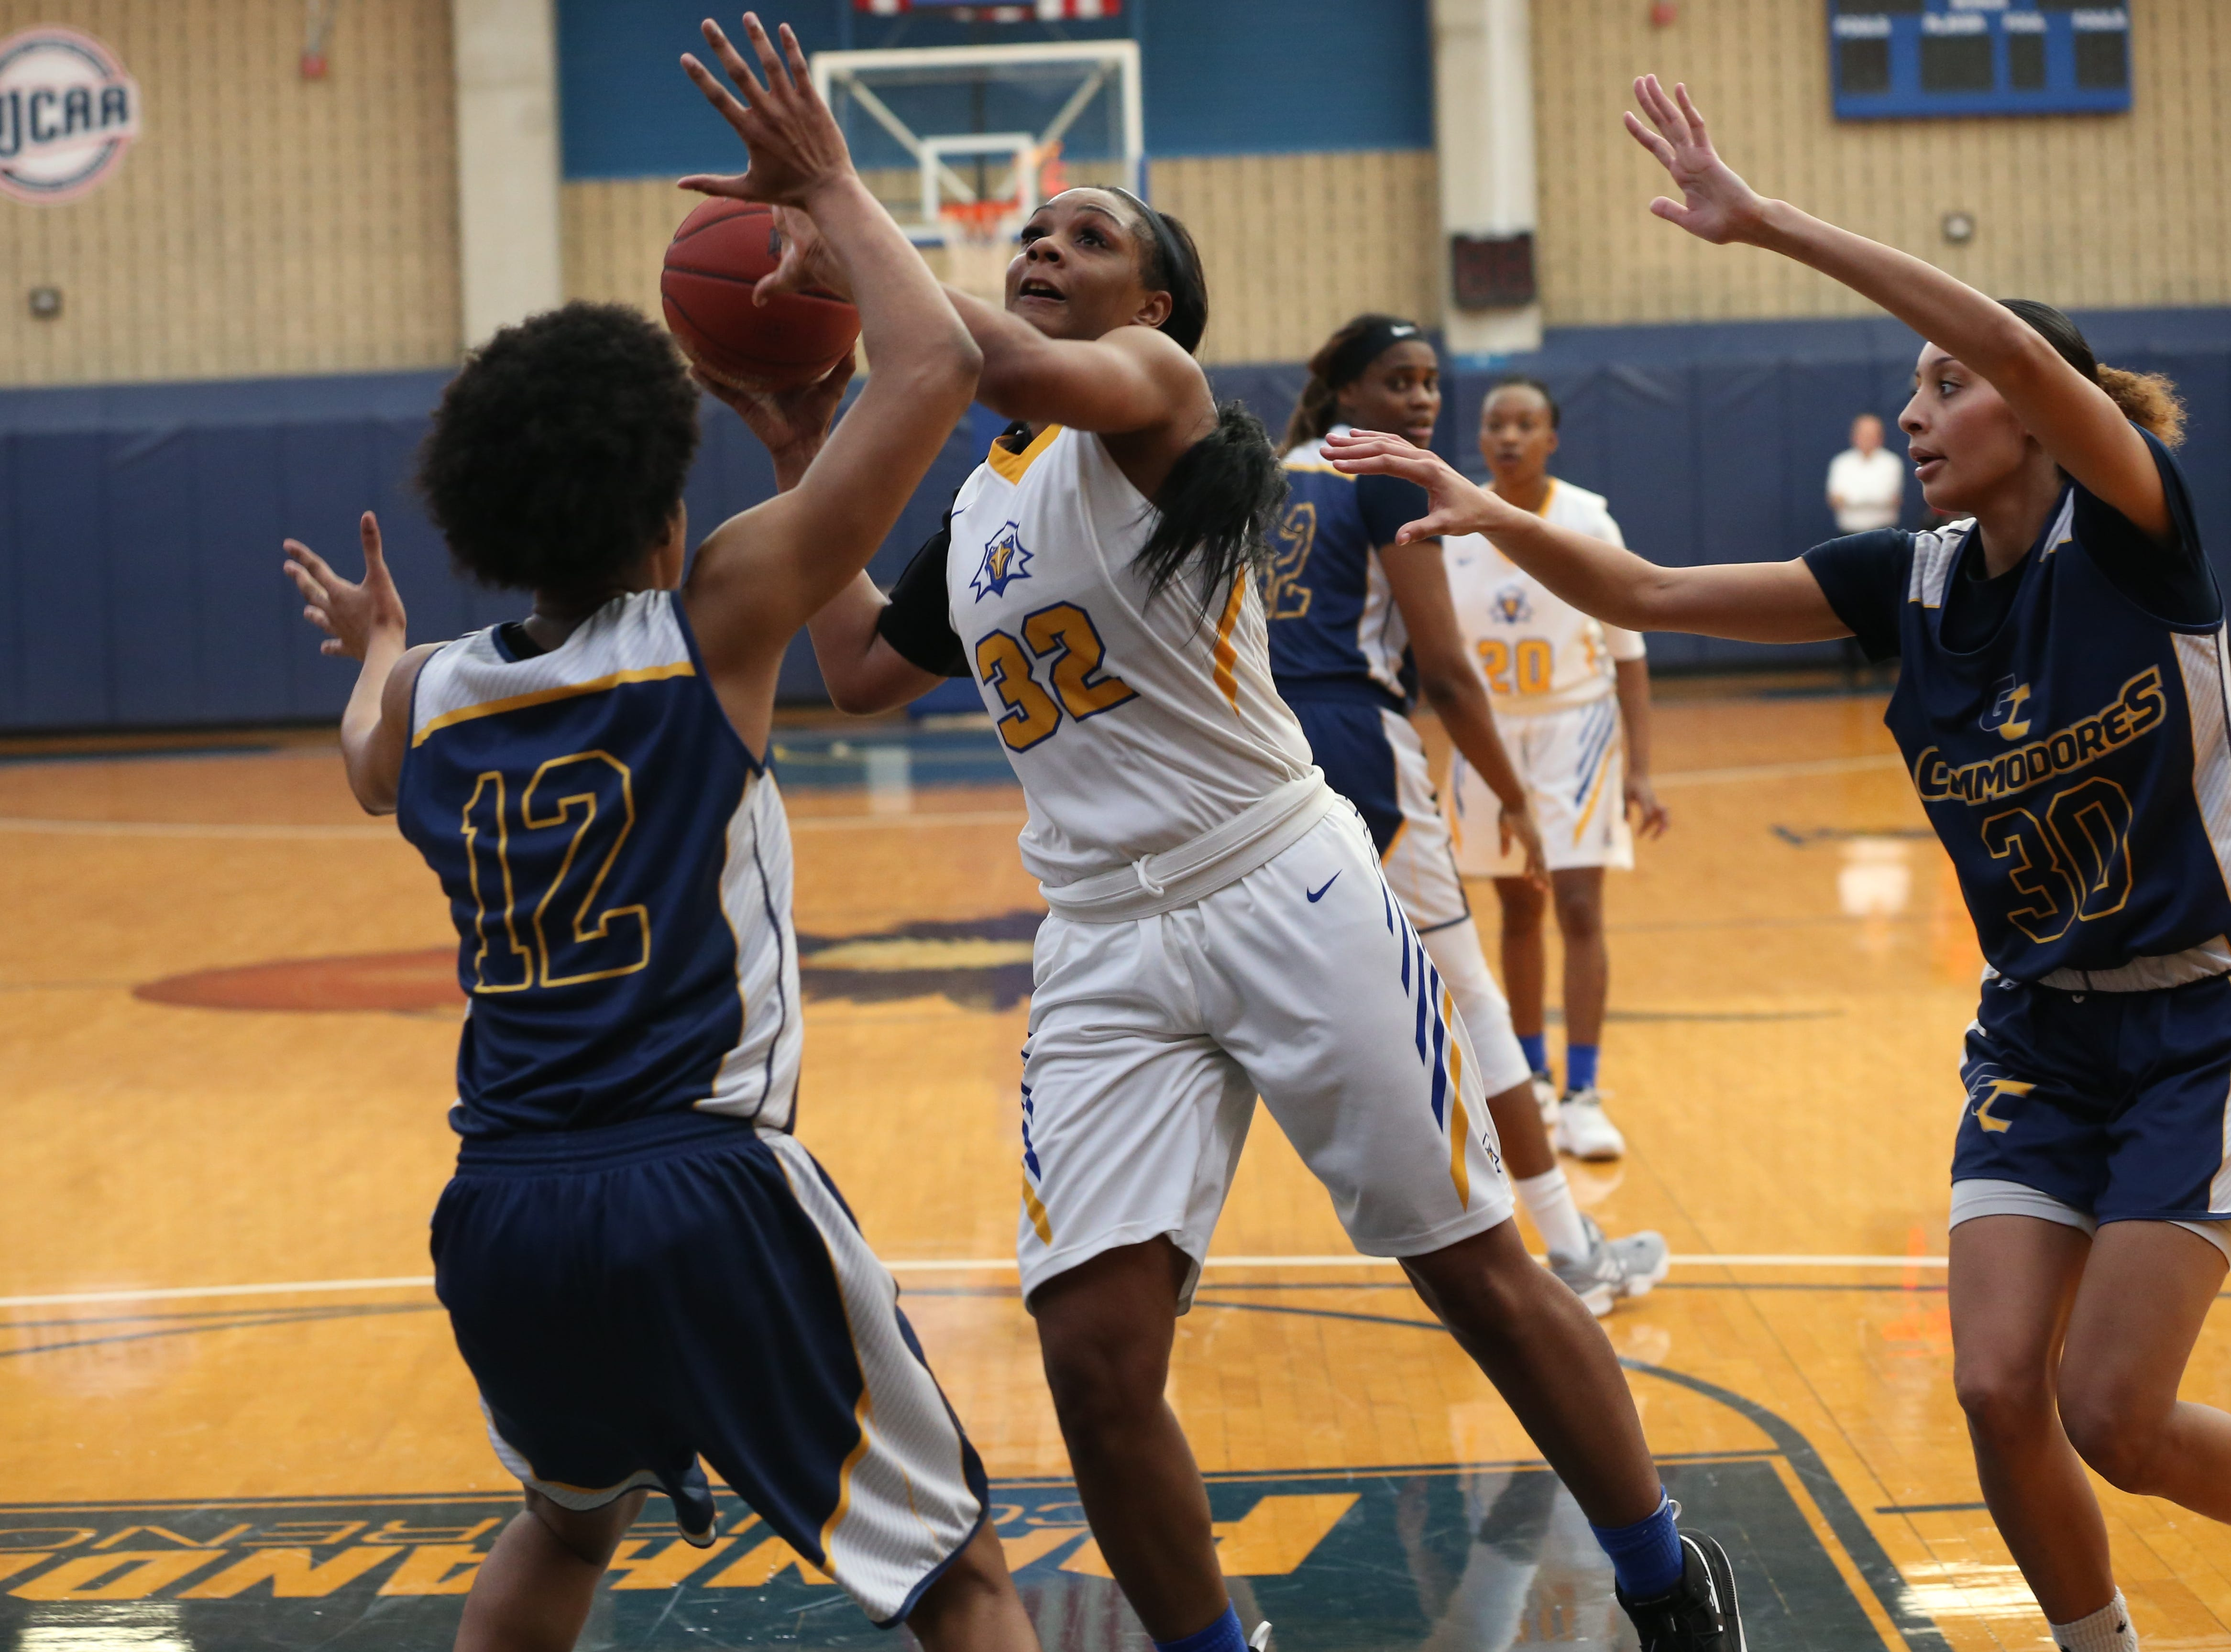 Tallahassee Community College Eagles forward Jamyra McChristine (32) shoots for two. The Tallahassee Community College Eagles host the Gulf Coast State College Commodores in a conference match-up in the Eagledome, Saturday, Jan. 5, 2019.